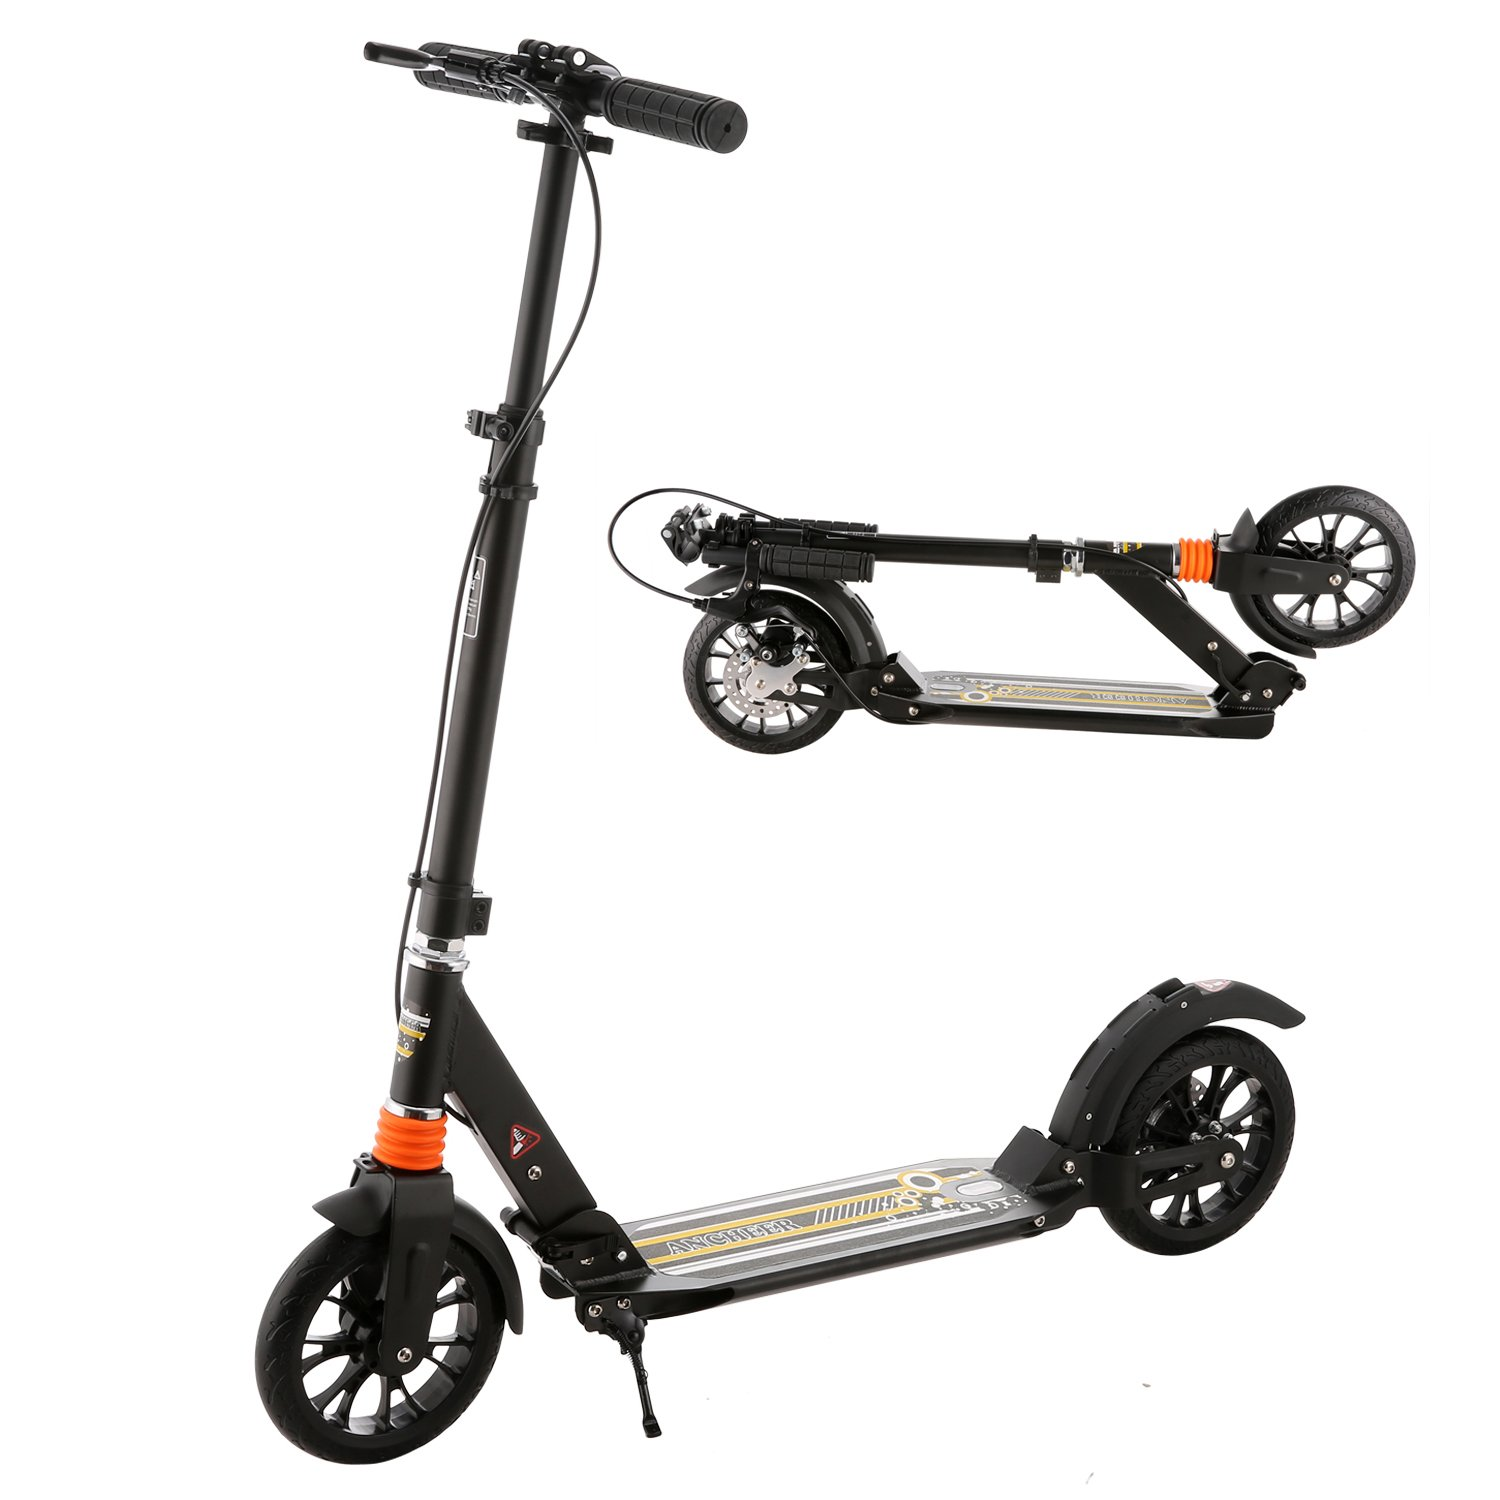 Ancheer Adult Teen Kick Scooter with Dual Suspension, 2 Big Wheels